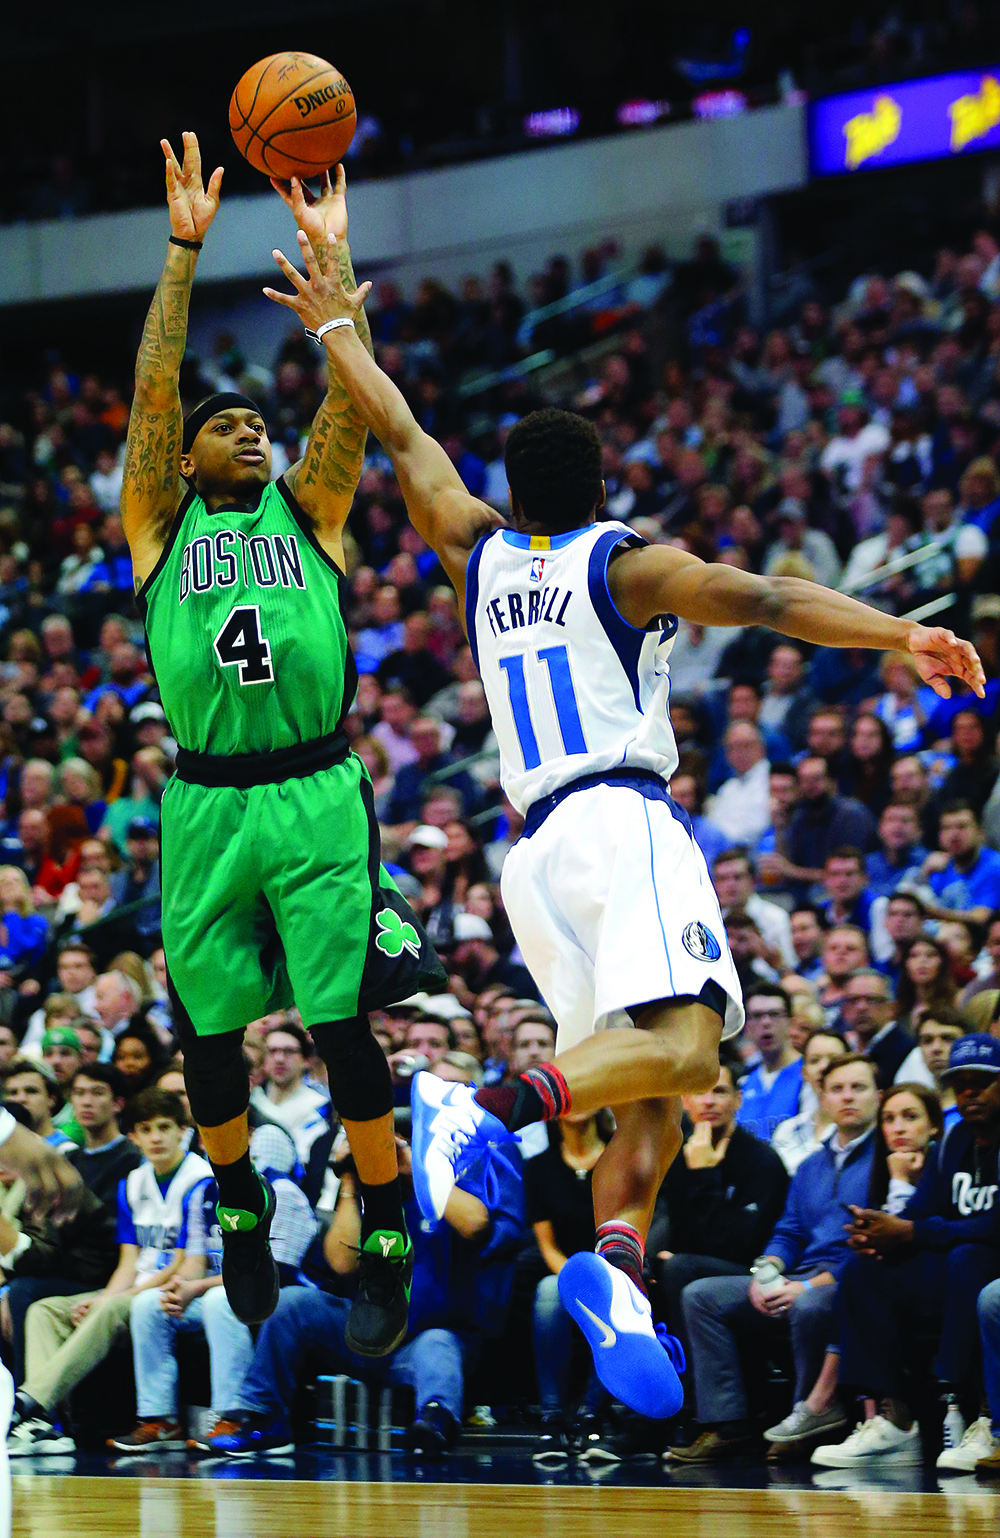 Dallas Mavericks guard Yogi Ferrell (11) tries to get a hand up in the face of Boston Celtics guard Isaiah Thomas (4) during the first half on Monday, Feb. 13, 2017 at the American Airlines Center in Dallas, Texas. (Tom Fox/Dallas Morning News/TNS) NO MAGAZINE SALES MANDATORY CREDIT; NO SALES; INTERNET USE BY TNS CONTRIBUTORS ONLY